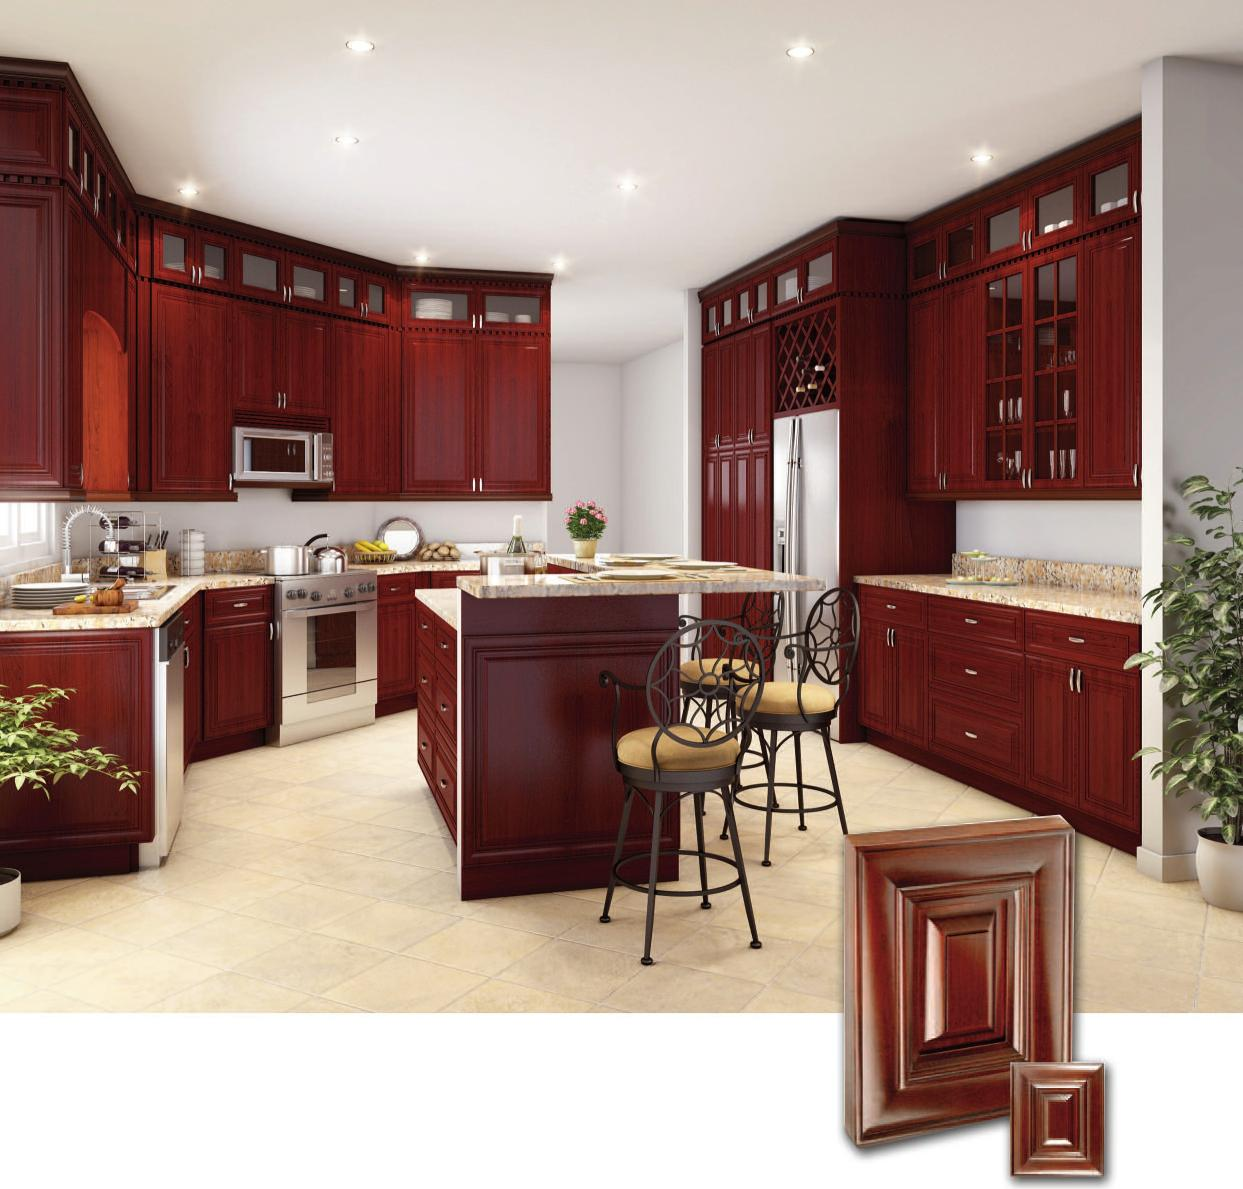 Kitchen Cabinets Cherry Wood Cherry Wood Kitchen Cabinets Cherry Kitchen Cabinets Ideas